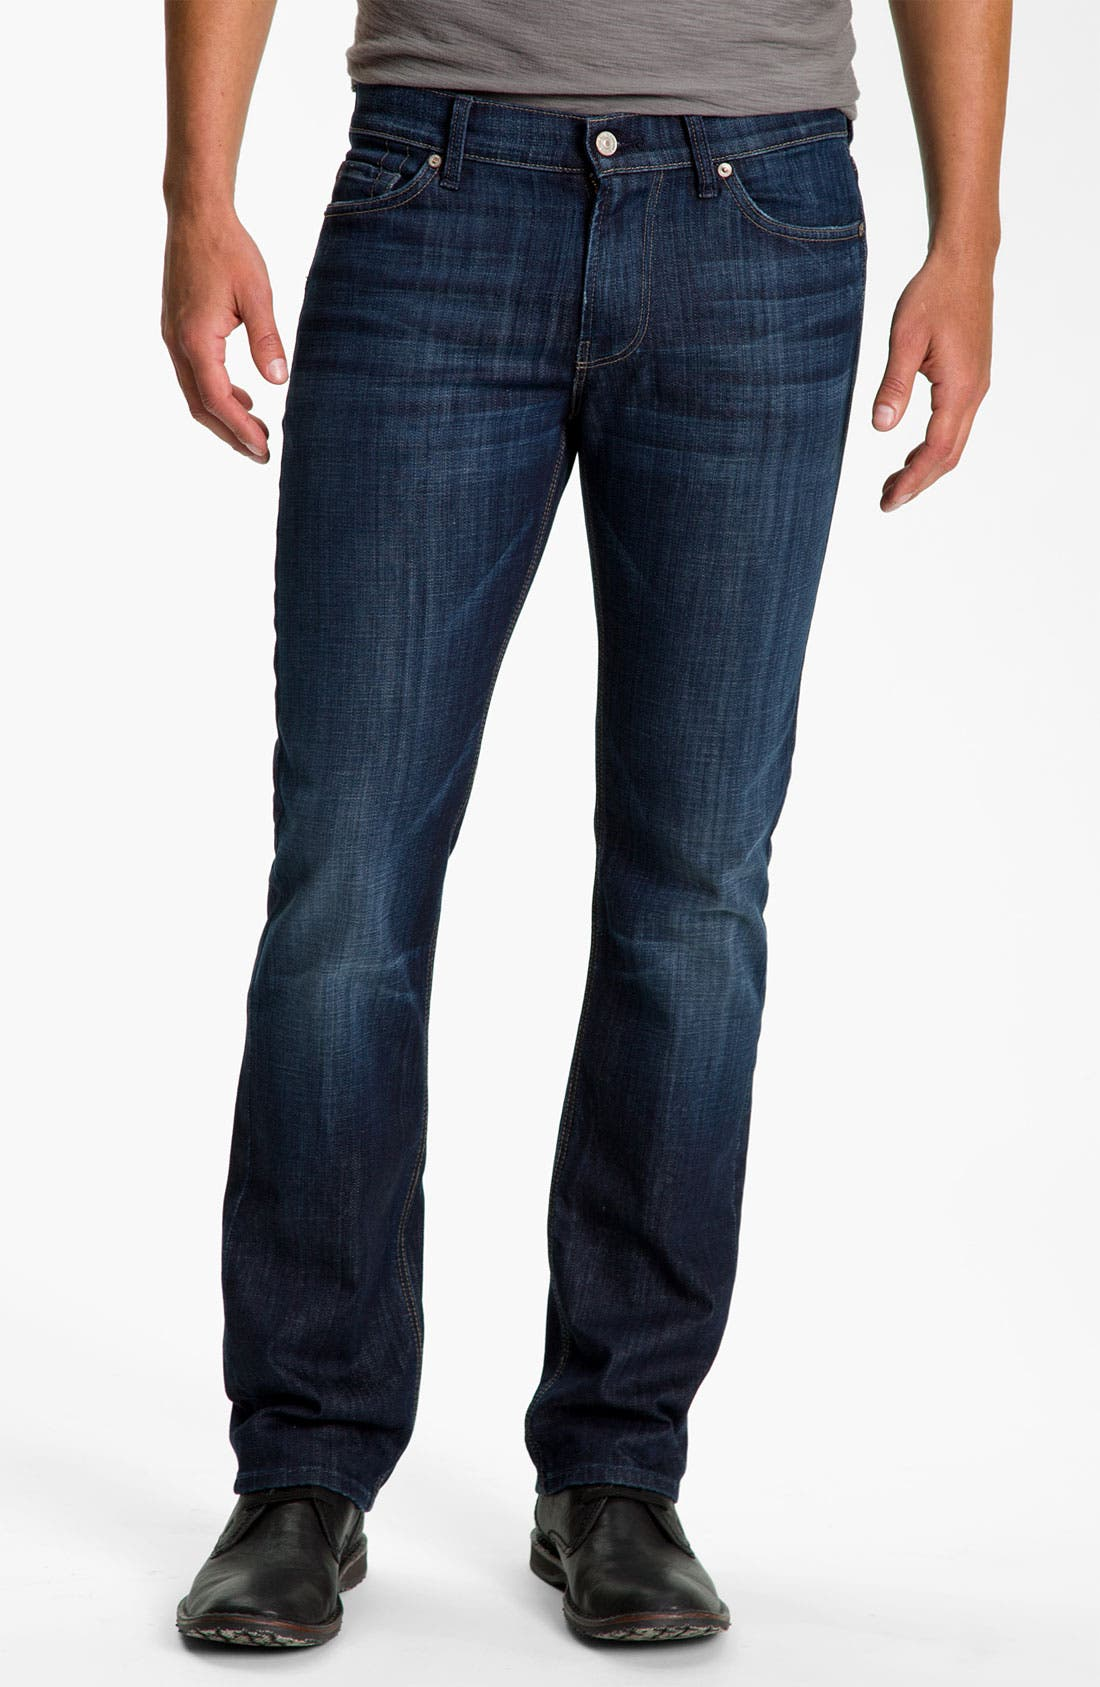 Slimmy Slim Fit Jeans,                         Main,                         color, Los Angeles Dark